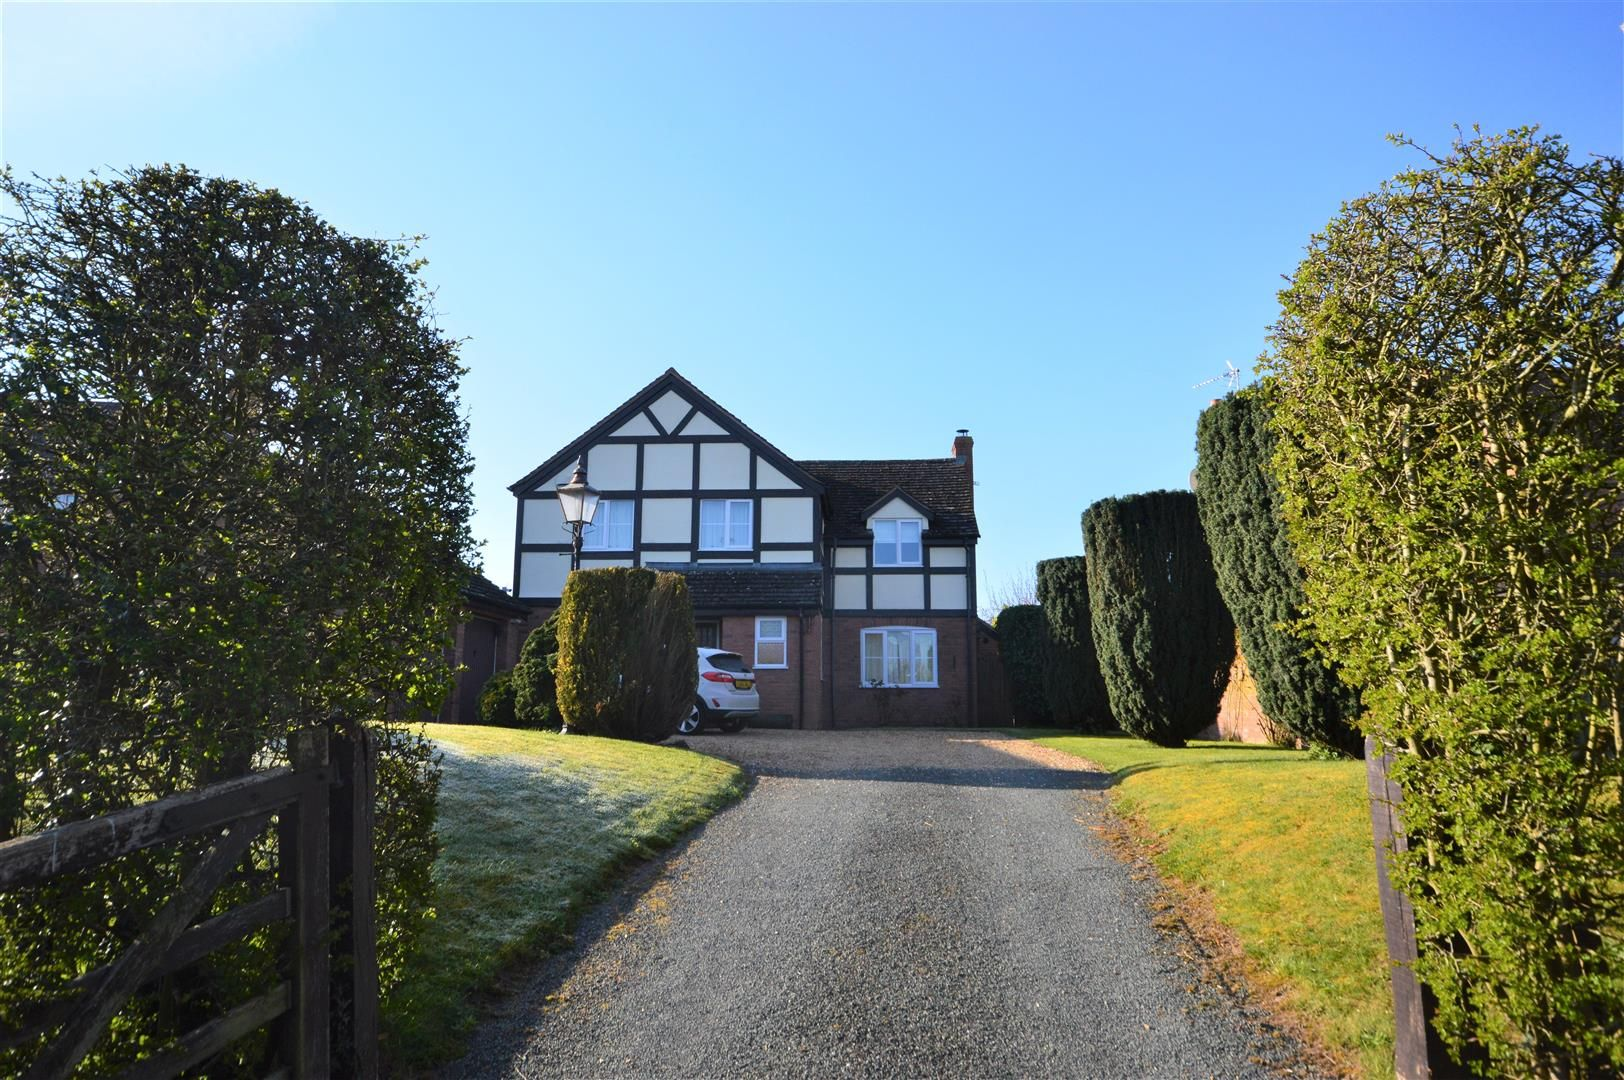 4 bed detached for sale in Monkland, HR6